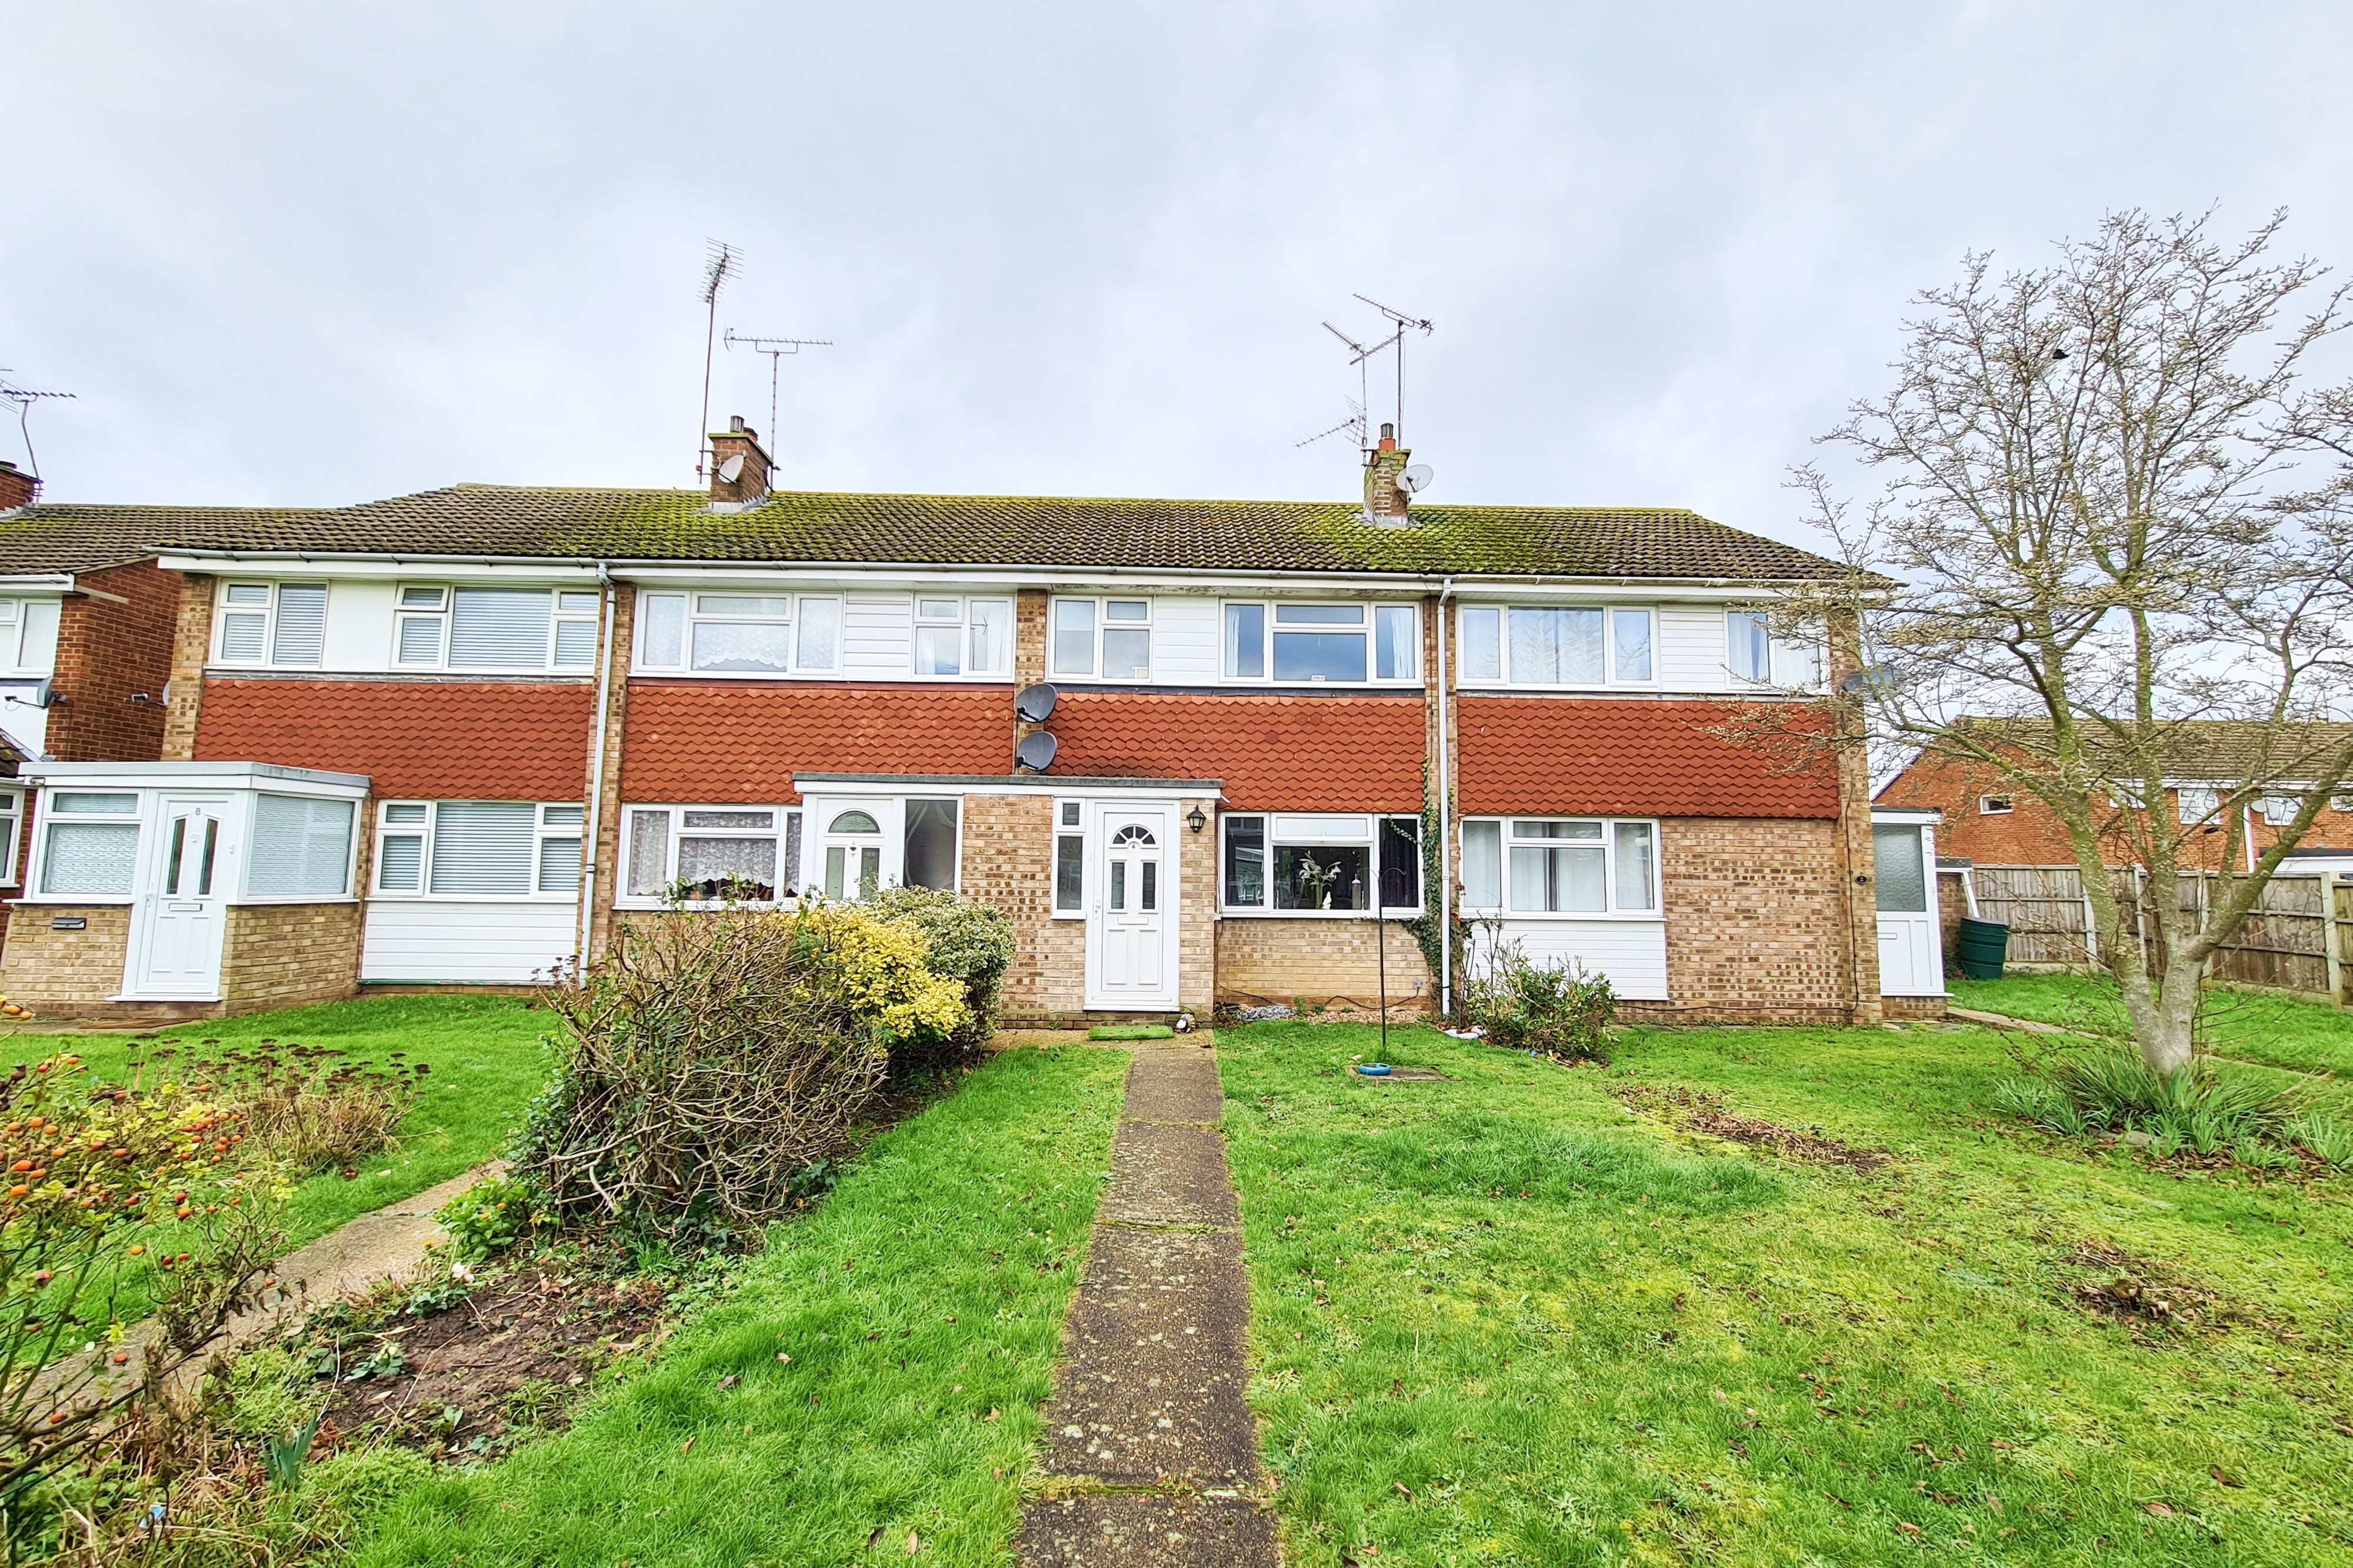 3 bed terraced house to rent in Scotts Walk, Rayleigh, SS6